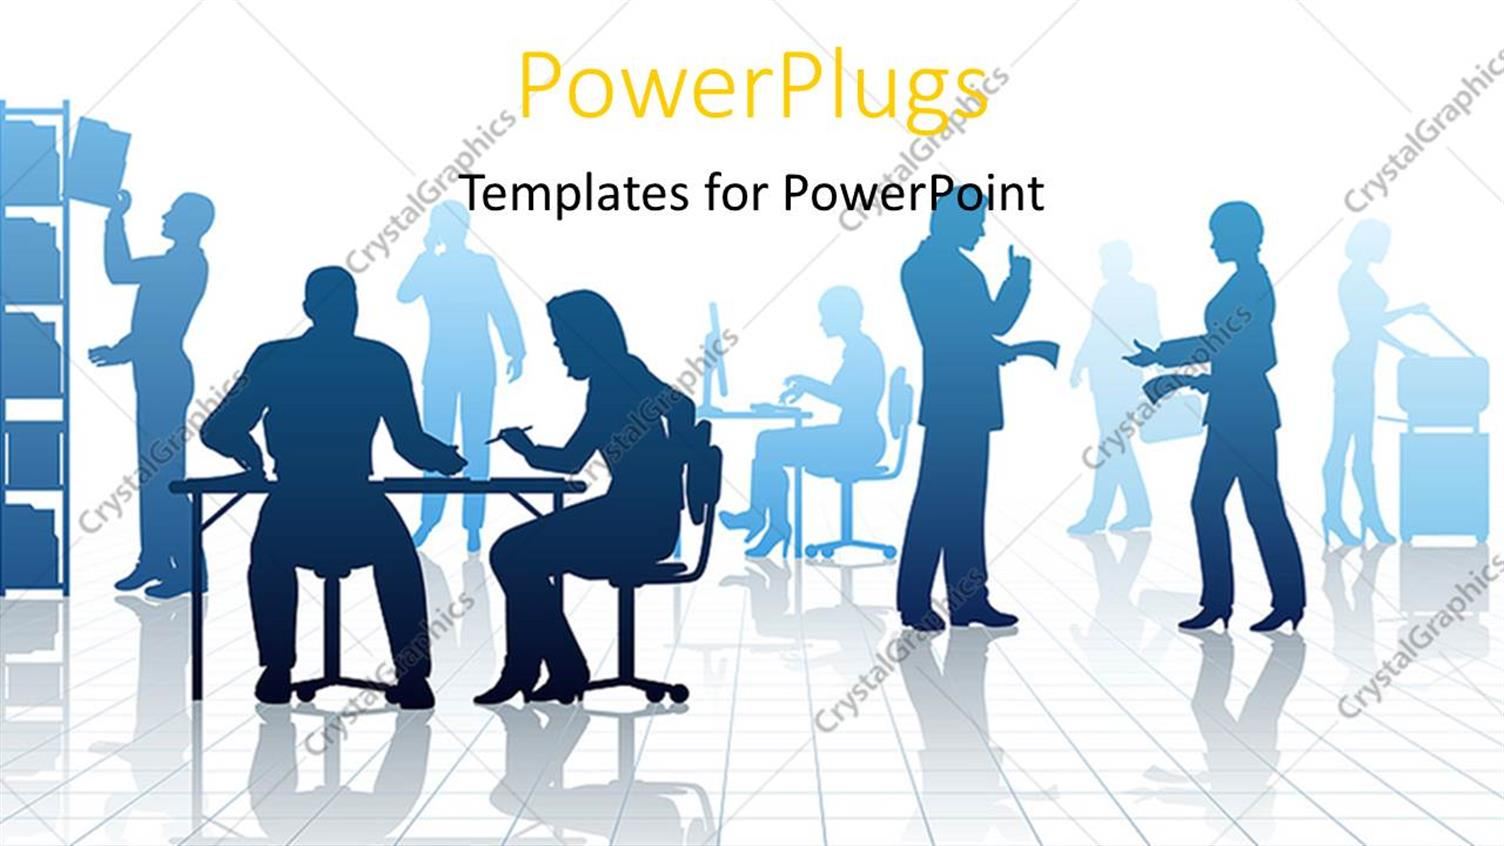 Powerpoint template silhouettes of business people in a busy powerpoint template displaying silhouettes of business people in a busy office with reflections alramifo Image collections